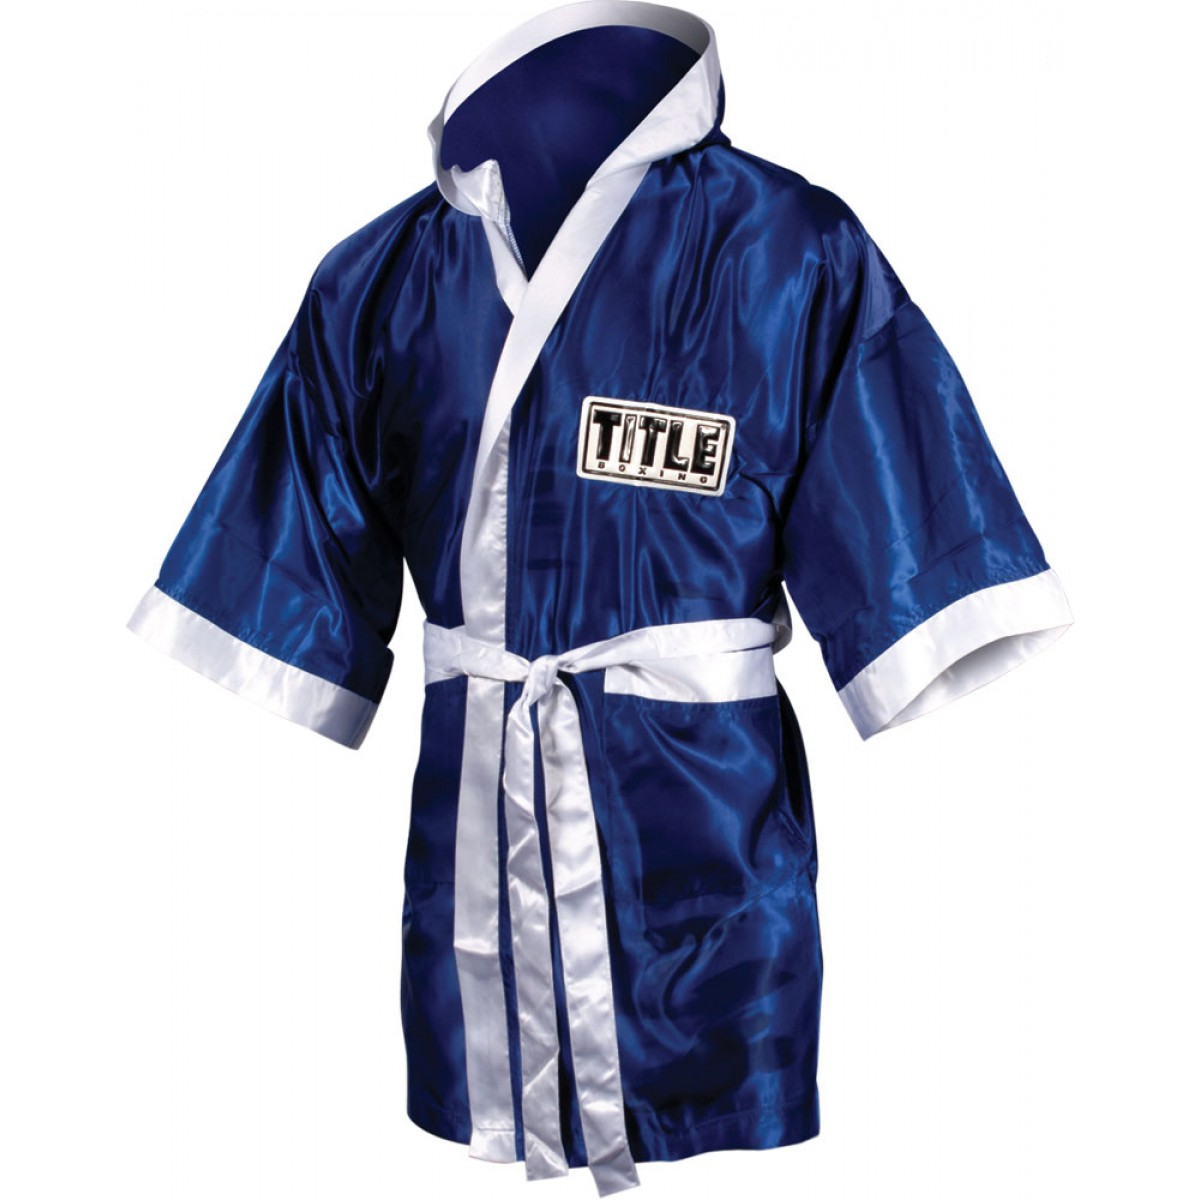 Personalised Boxing Robes: Title Full Length Satin Boxing Robe